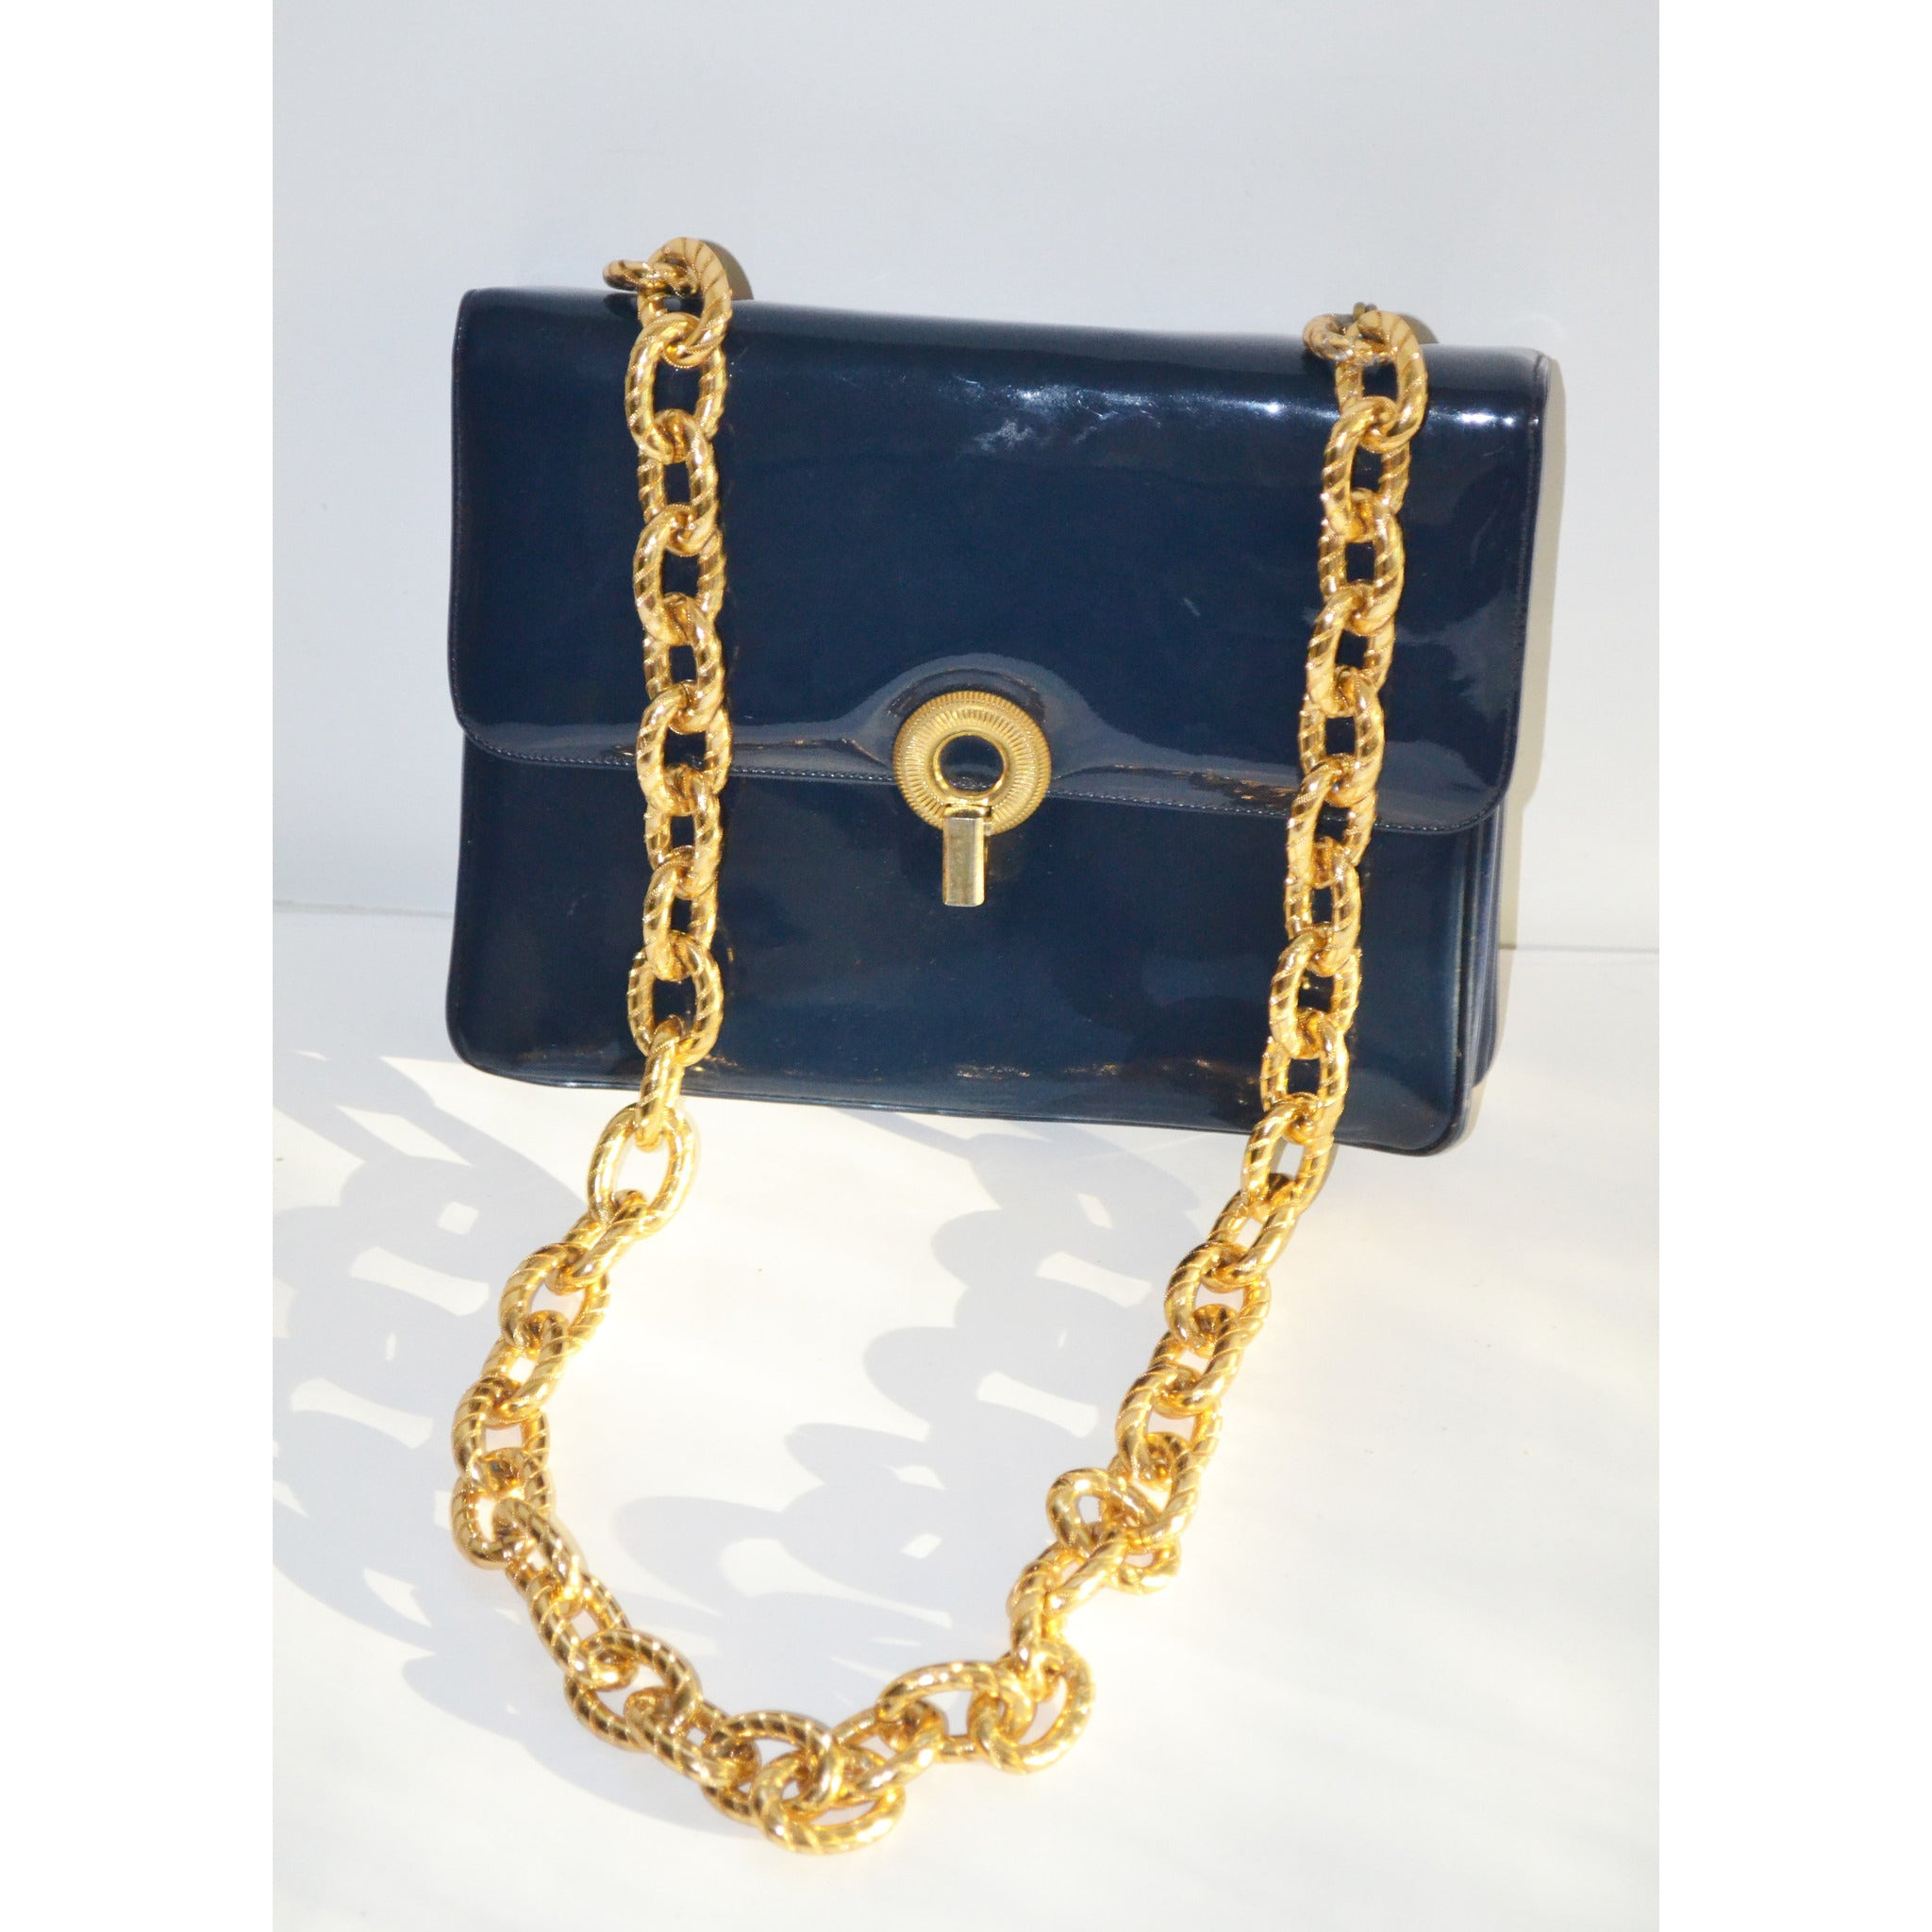 Vintage Navy Patent Gold Chain Purse By Joseph